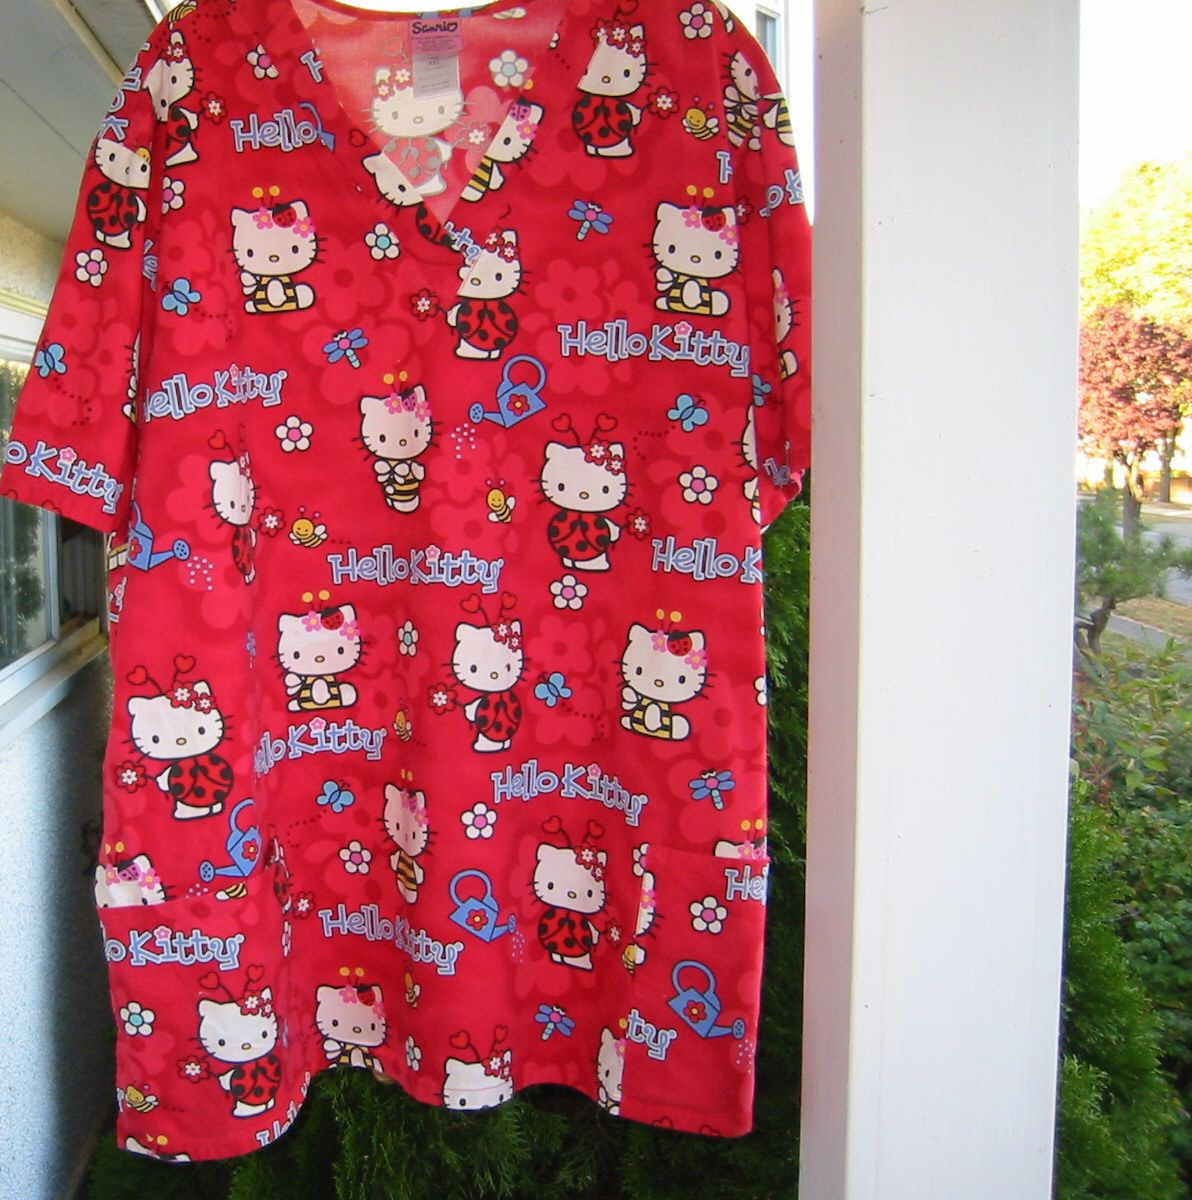 Sanrio Hello Kitty Red flower print scrub top flowers, bees, ladybugs